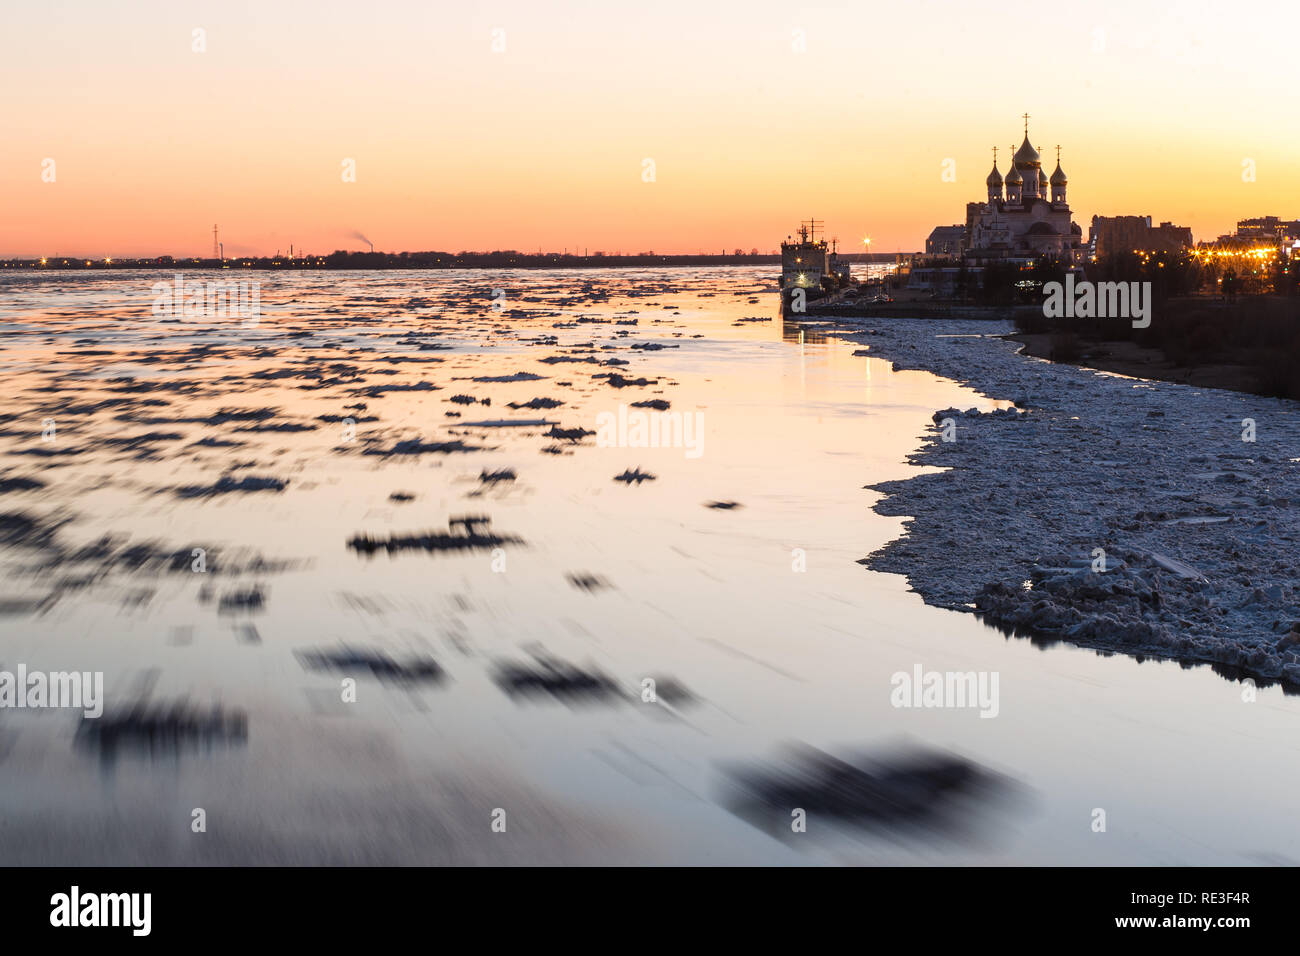 Ice drift in Northern Dvina river in Arkhangelsk, Russia. Beautiful ice motion evening landscape. - Stock Image